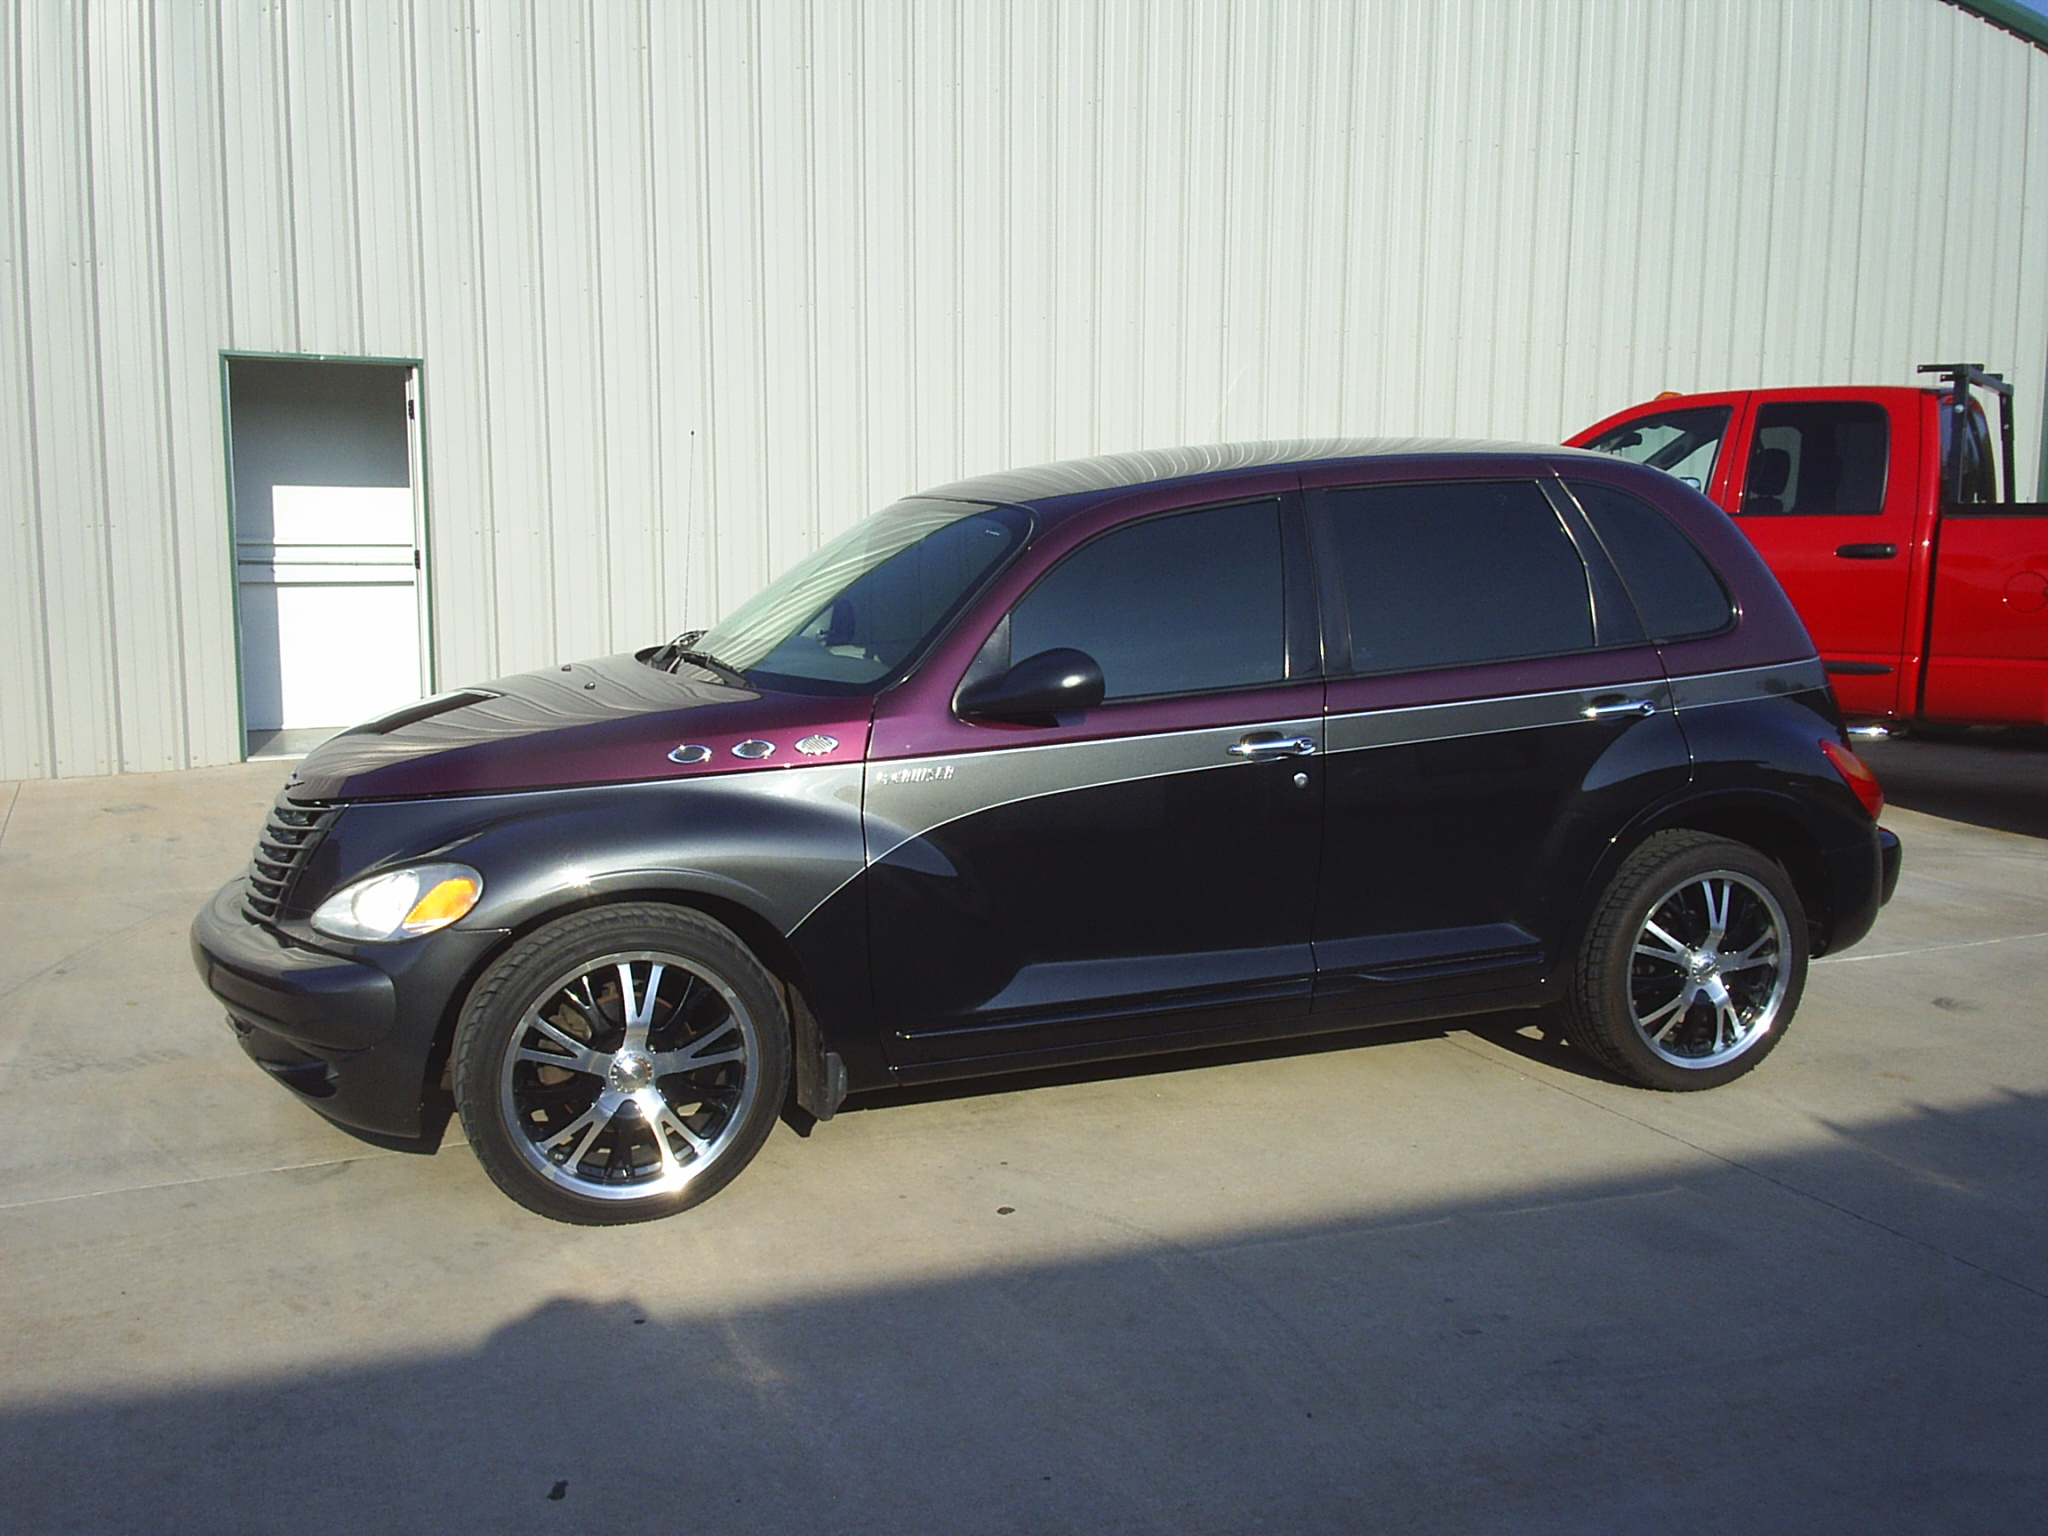 Custom two-tone PT Cruiser by Body Worx of Guthrie